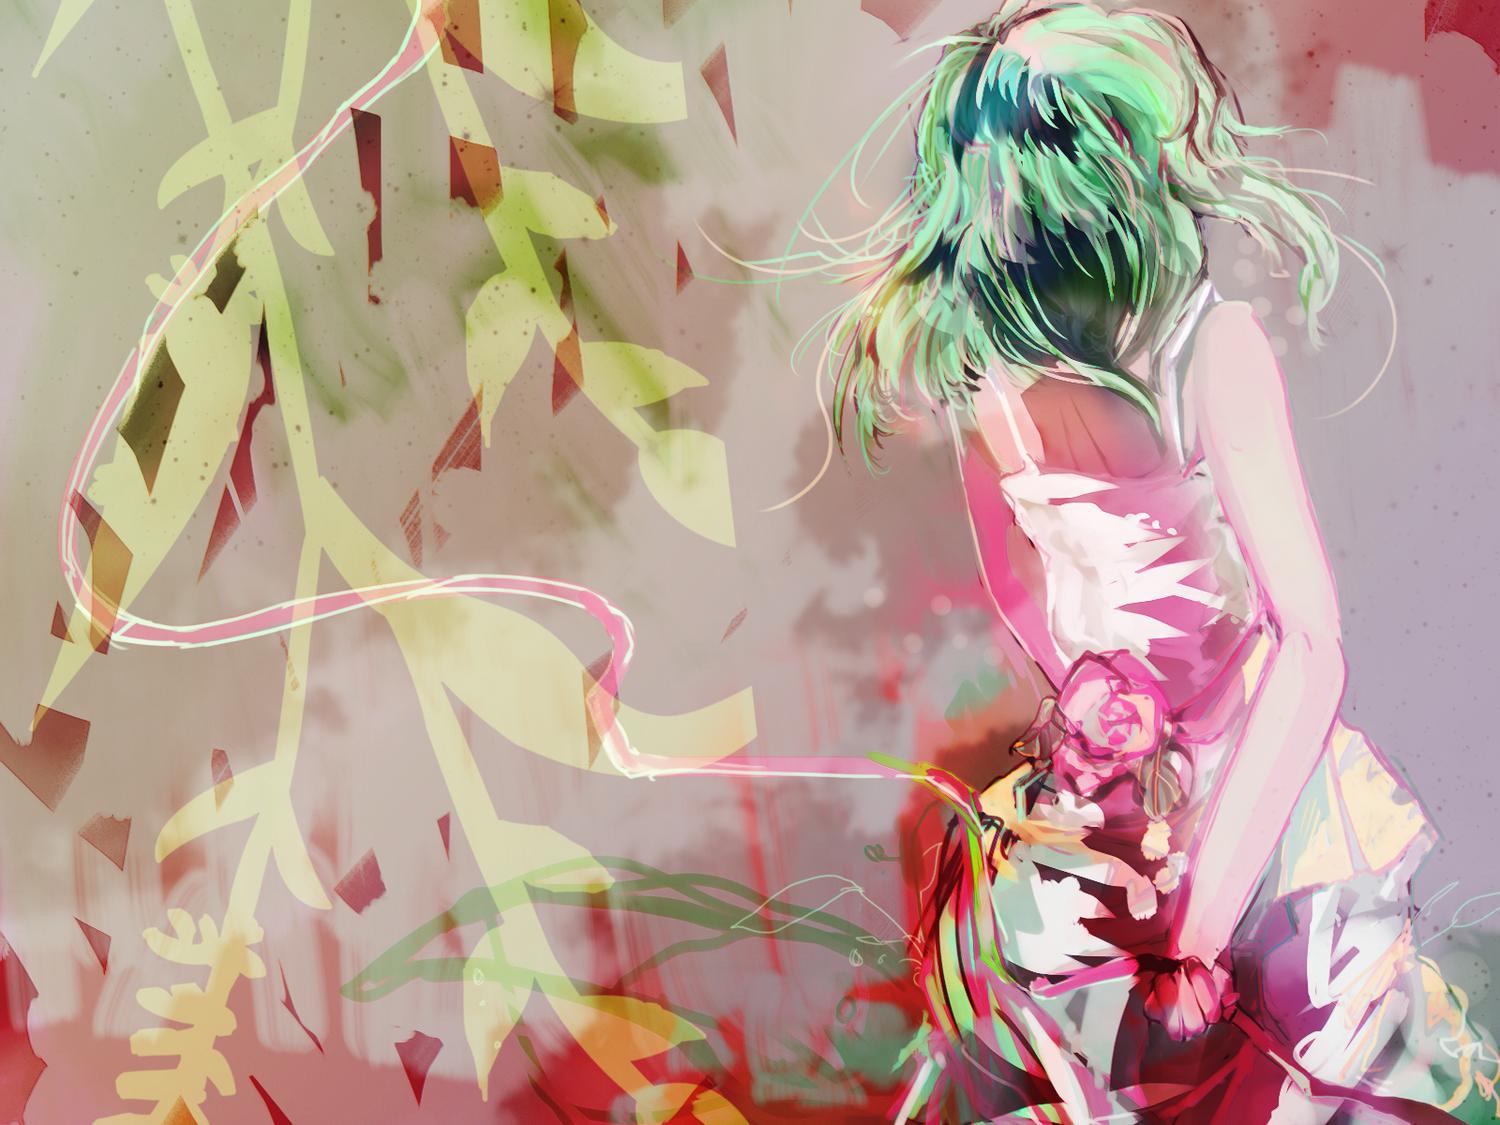 Gumi-in-soft-colors-wallpaper-wp5806206